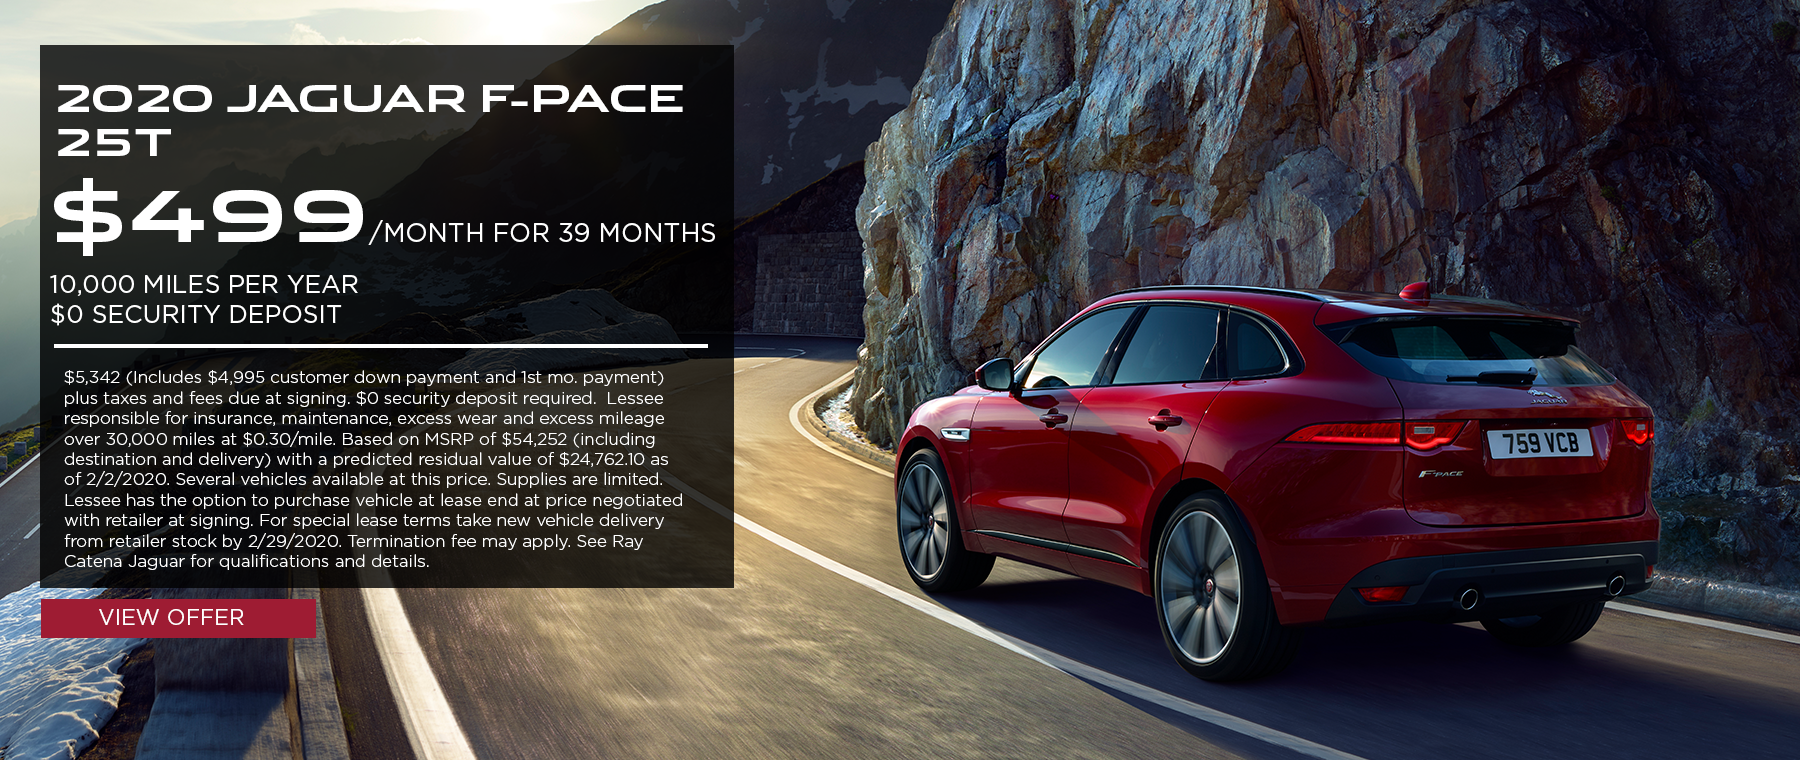 2020 Jaguar F-PACE 25t · $499/mo. · 39 mos. · 10,000 miles per year  $5,342 (Includes $4,995 customer down payment and 1st mo. payment) plus taxes and fees due at signing. $0 security deposit required.  Lessee responsible for insurance, maintenance, excess wear and excess mileage over 30,000 miles at $0.30/mile. Based on MSRP of $54,252 (including destination and delivery) with a predicted residual value of $24,762.10 as of 2/2/2020. Several vehicles available at this price. Supplies are limited. Lessee has the option to purchase vehicle at lease end at price negotiated with retailer at signing. For special lease terms take new vehicle delivery from retailer stock by 2/29/2020. Termination fee may apply. See Ray Catena Jaguar for qualifications and details. Click to view offer. Rear of red F-PACE on highway along mountain